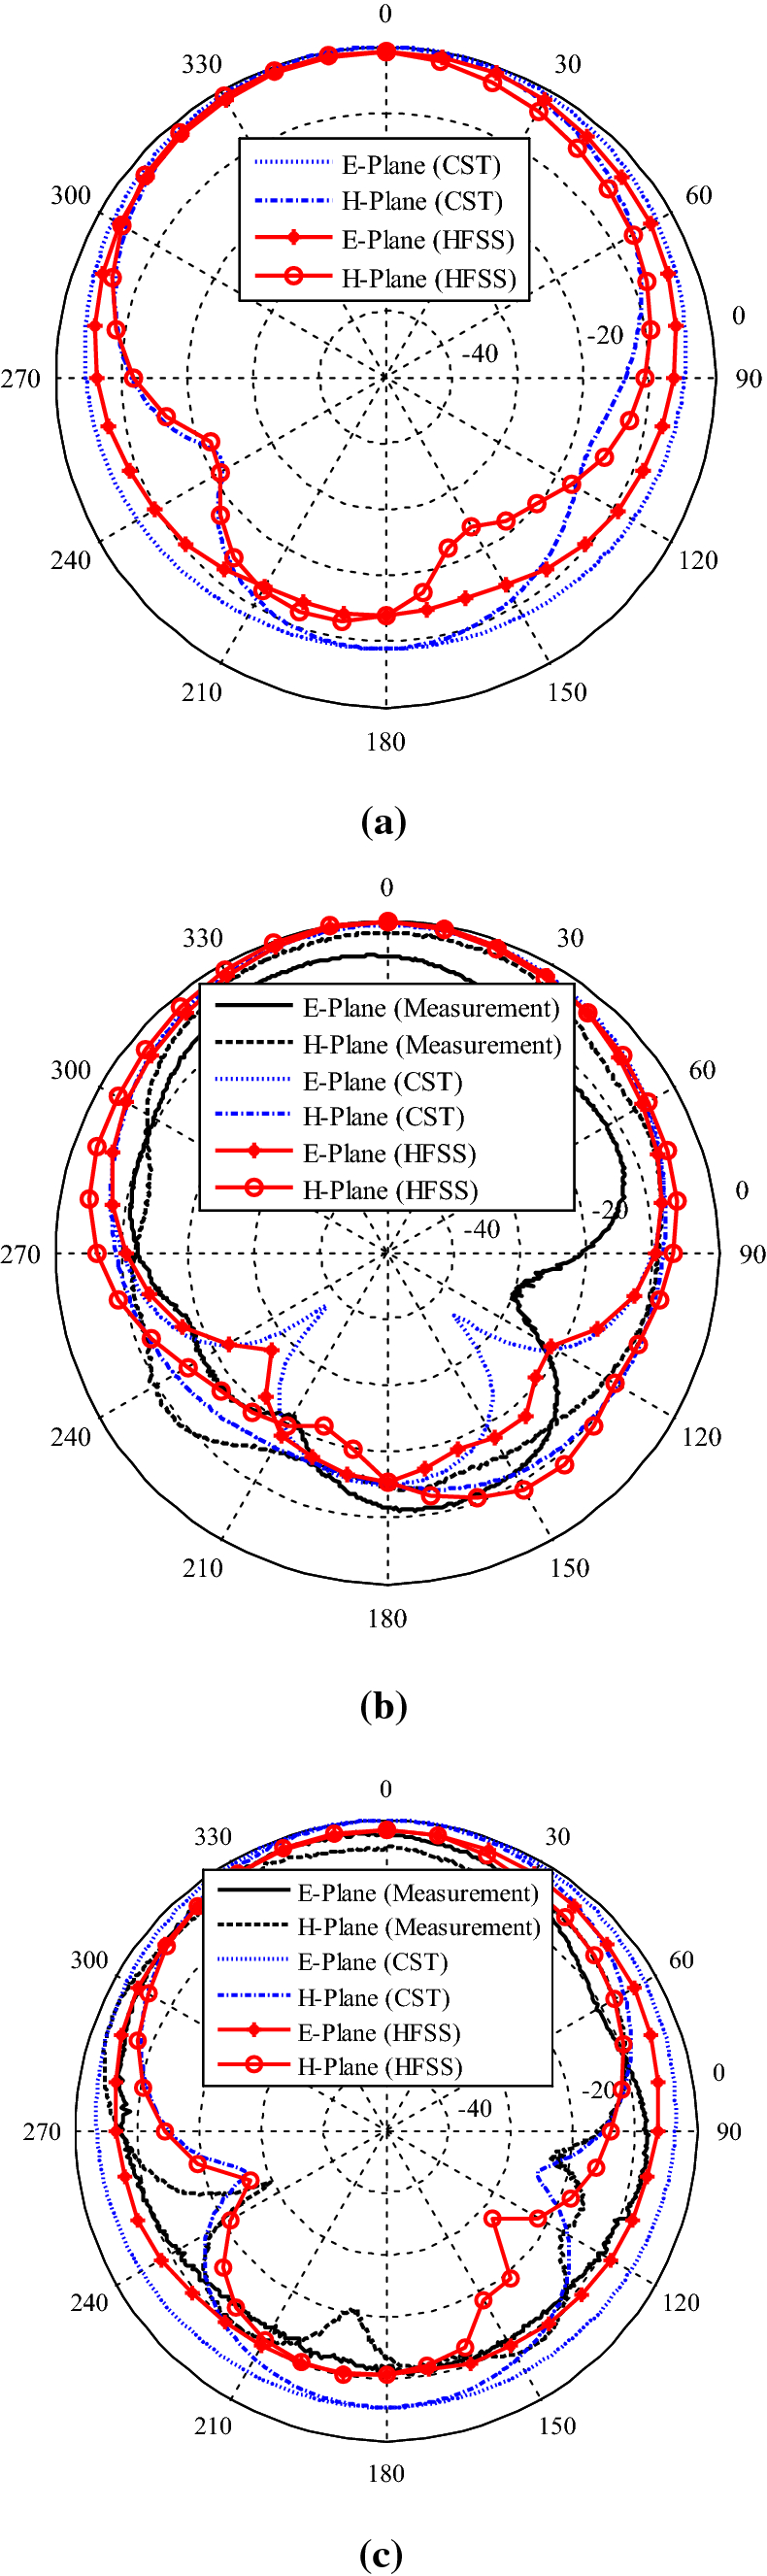 Design of Frequency Reconfigurable Patch Antennas with Defected